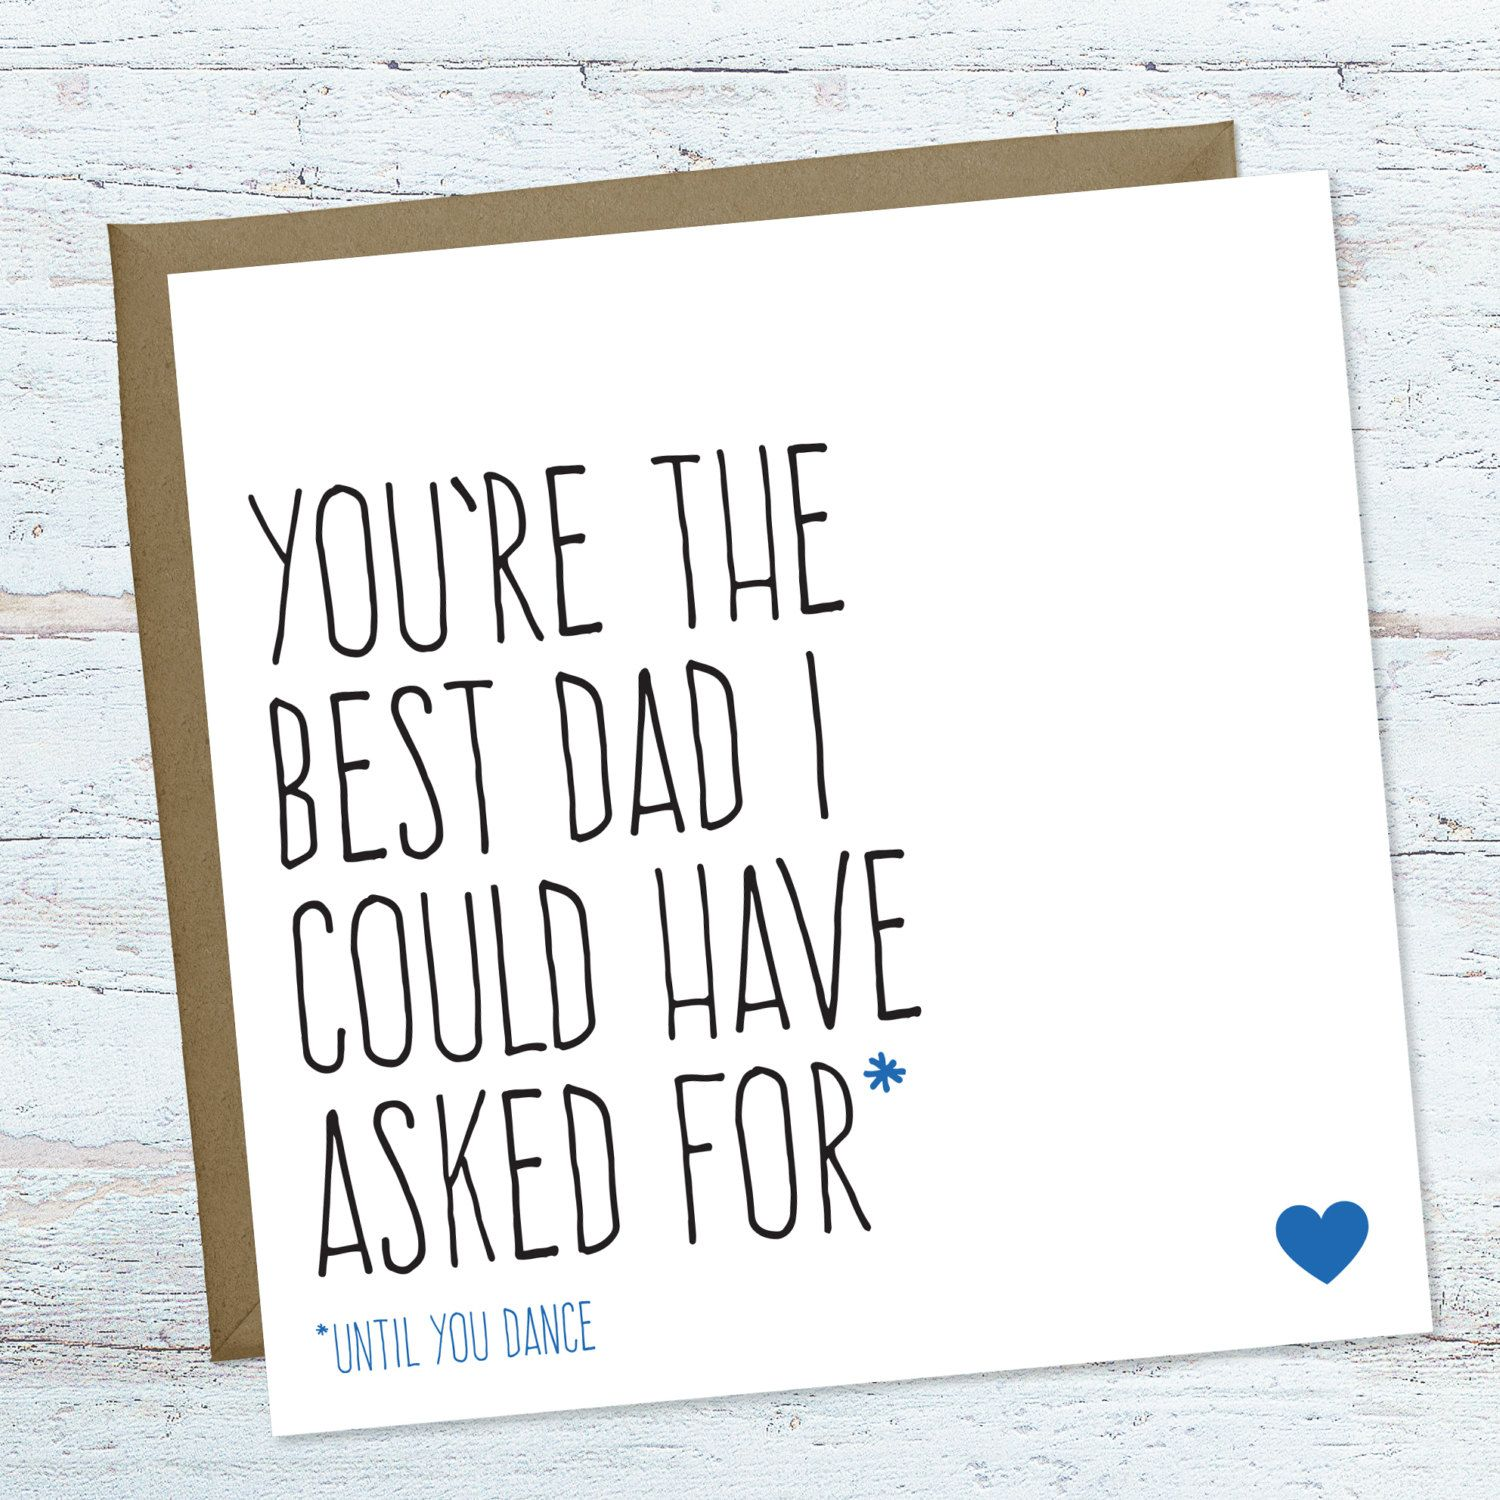 Funny Father S Day Card Birthday Card For Dad Funny Dad Card Best Dad I Could Have Asked For Dad Birthday Card Dad Cards Birthday Greetings For Dad